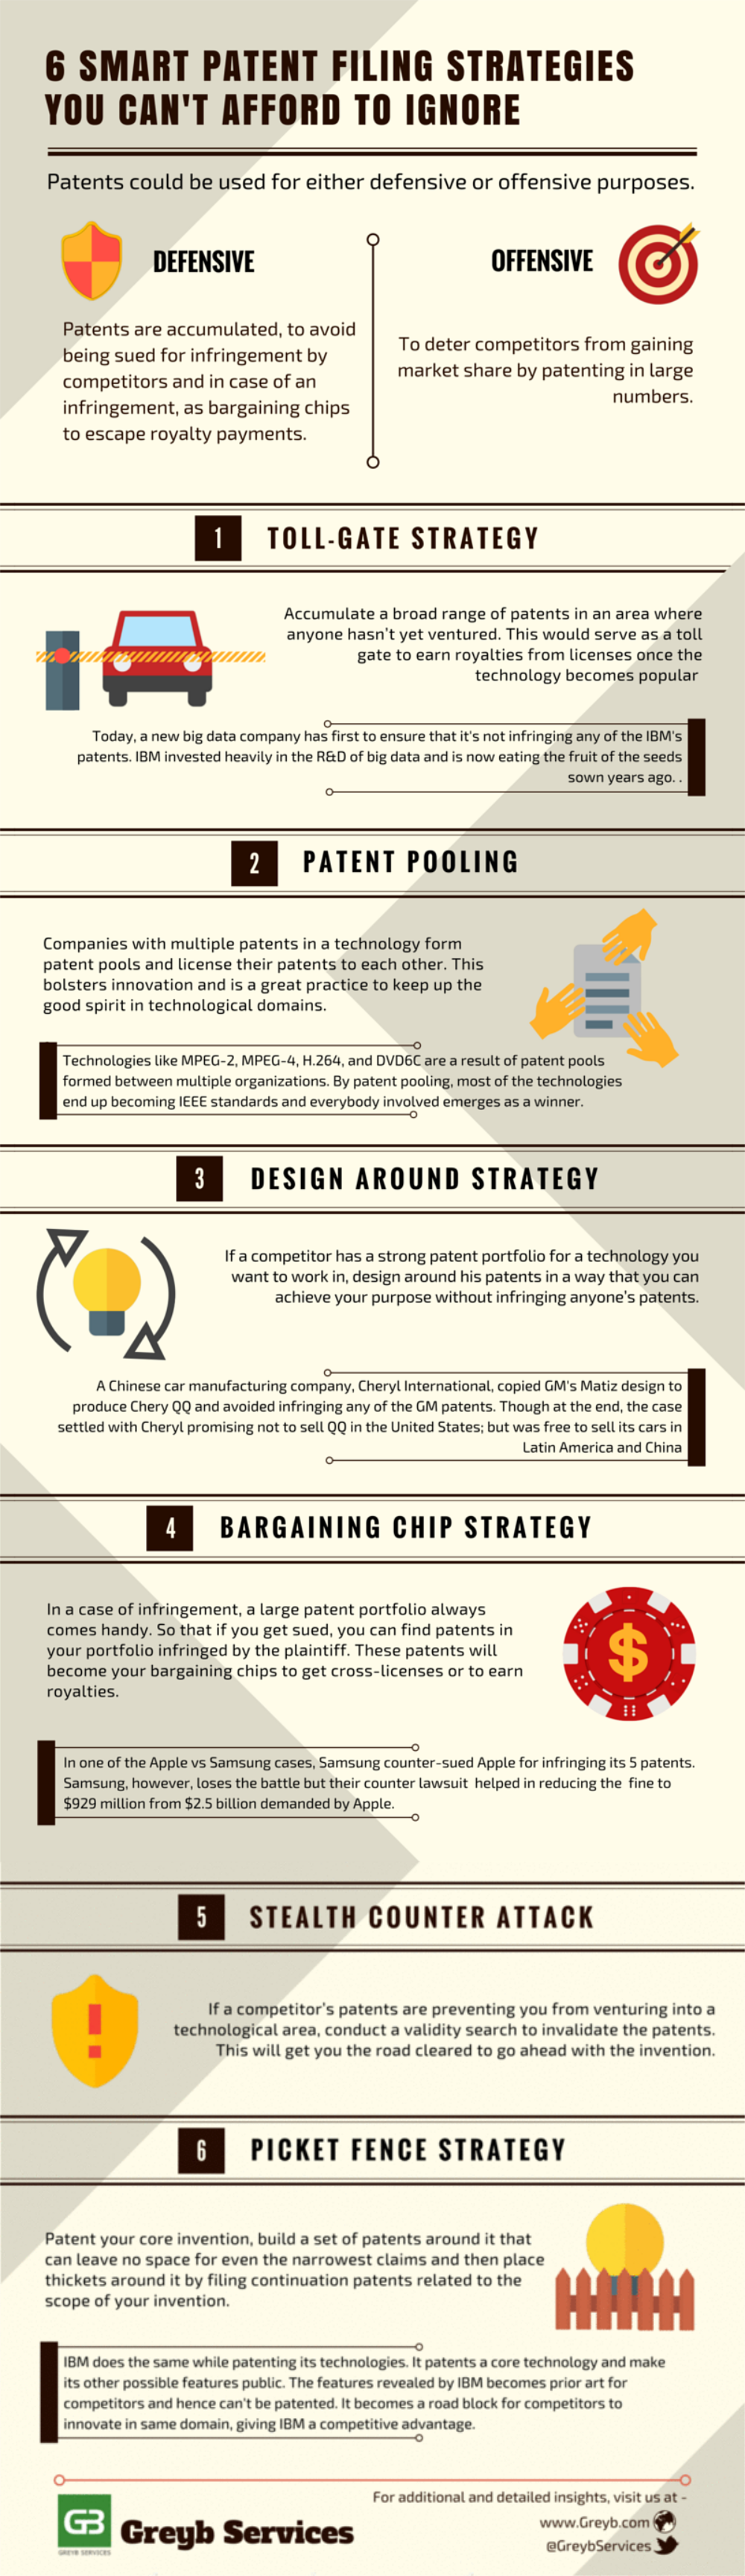 Smart-patent-filing-strategies-infograph